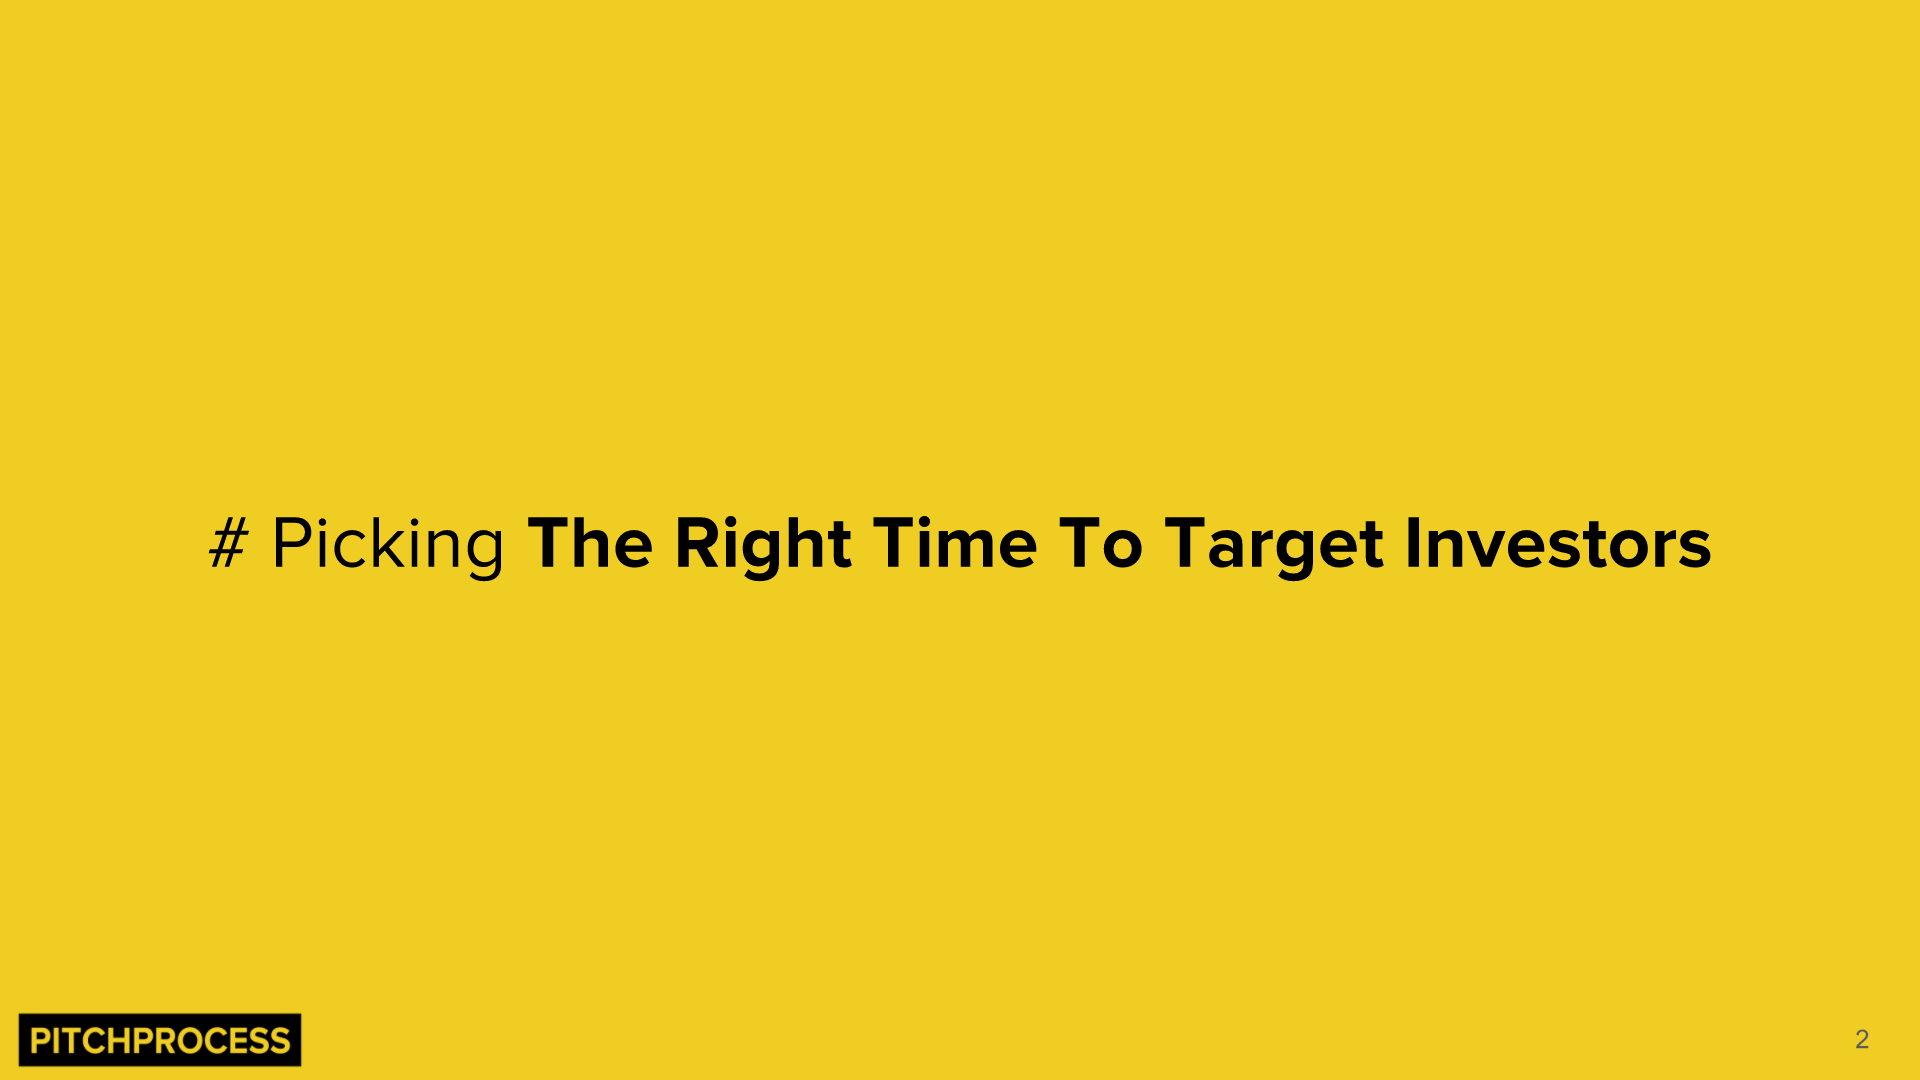 Picking The Right Time To Target The Right Investors